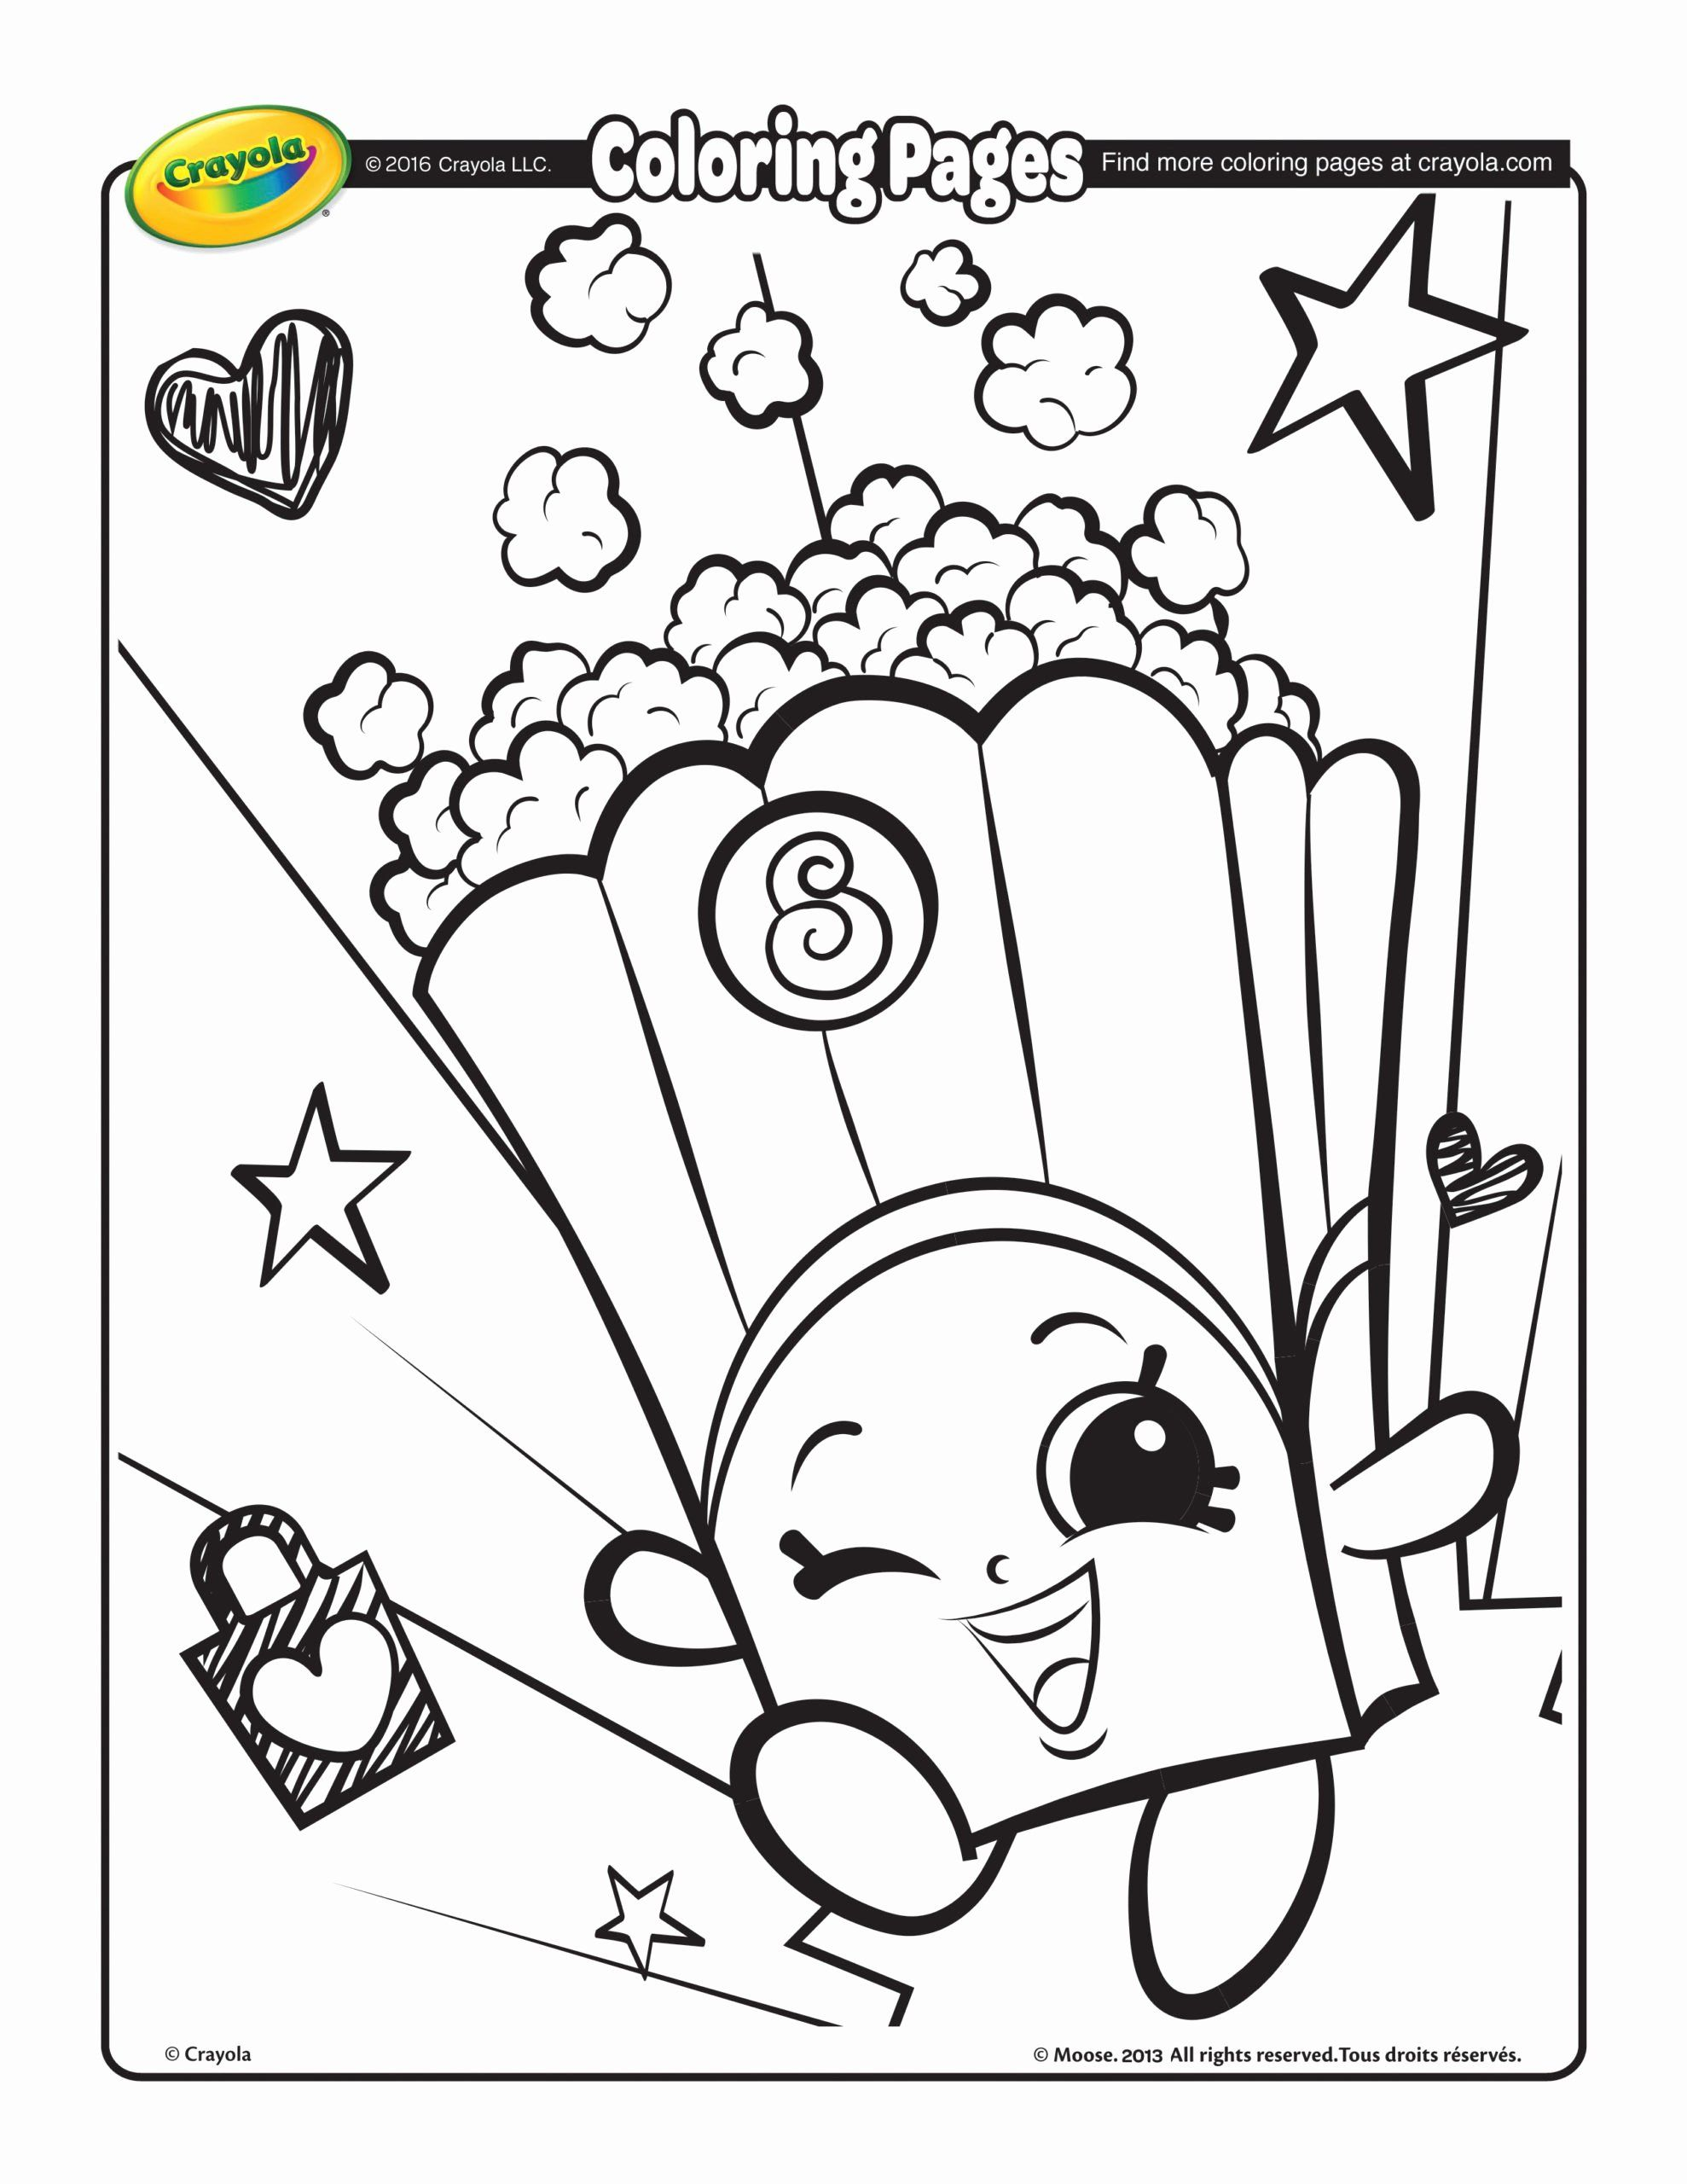 Thanksgiving Coloring Activity Sheets Elegant Printable Coloring Pages Crayola Shopkins Colouring Pages Christmas Coloring Pages Crayola Coloring Pages